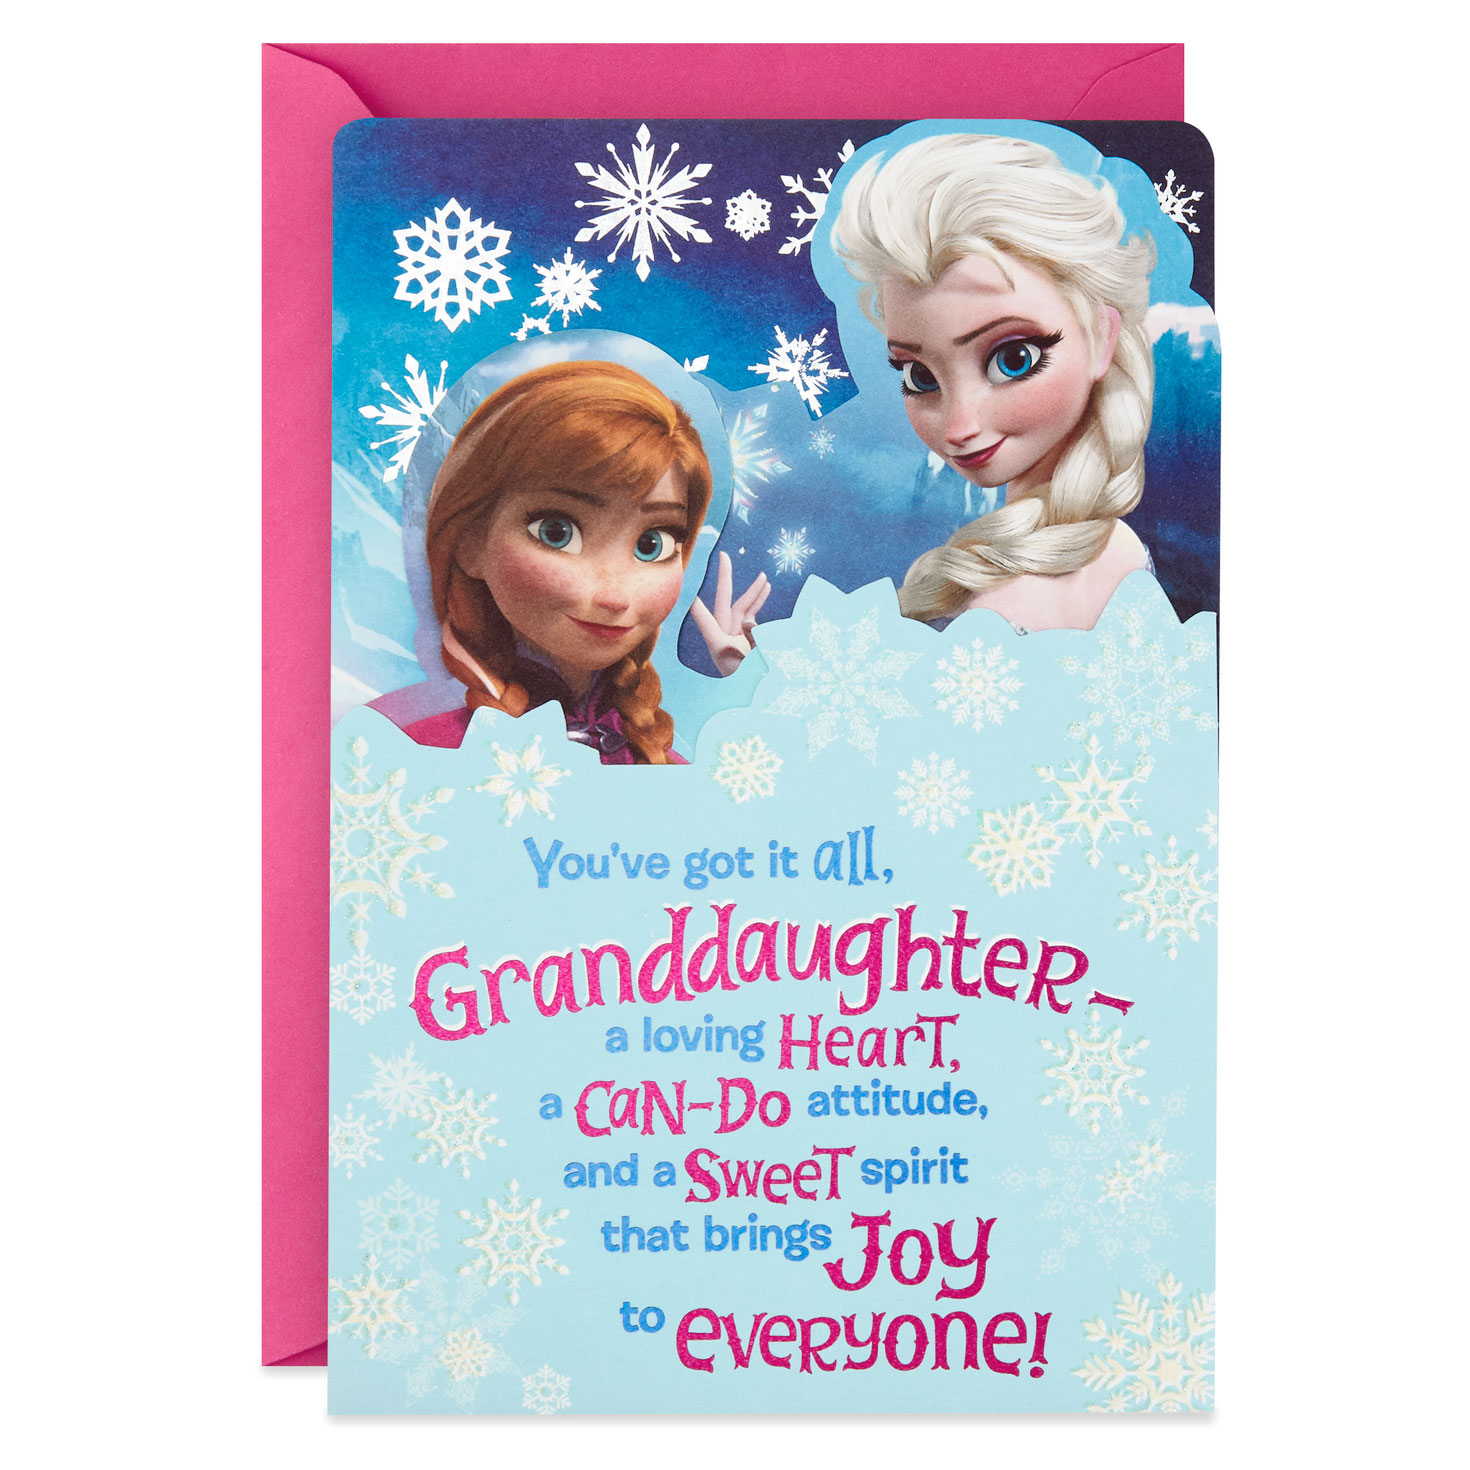 Granddaughter to be proud of you Traditional Christmas Lovely Verse New Card